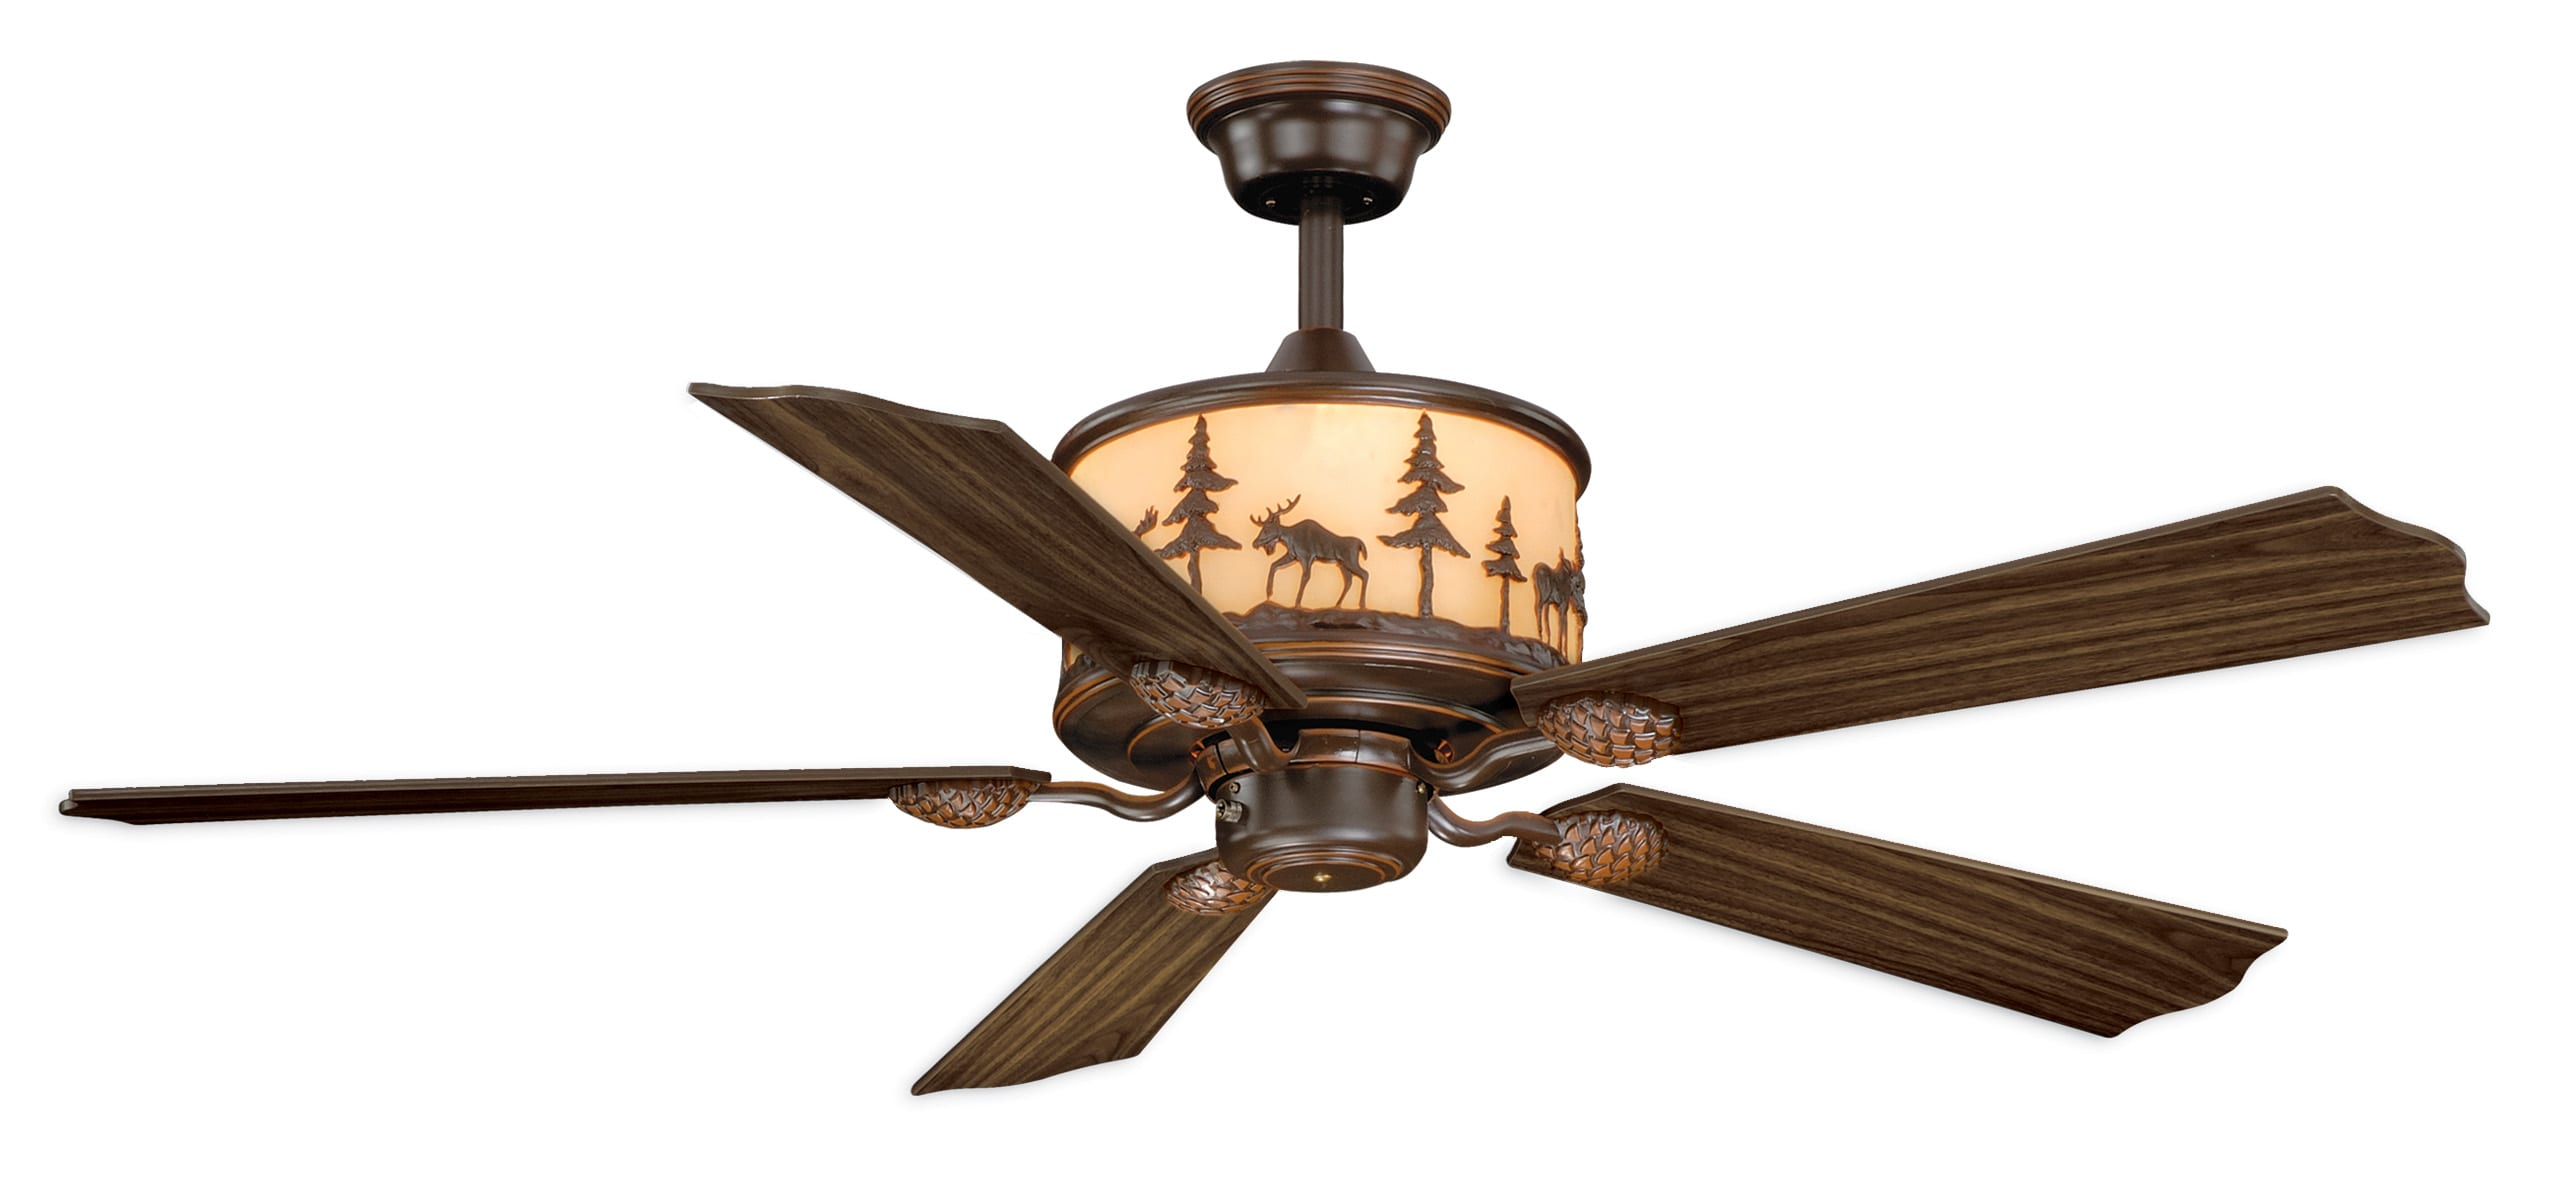 rustic wood ceiling fans style cape cod yellowstone 56